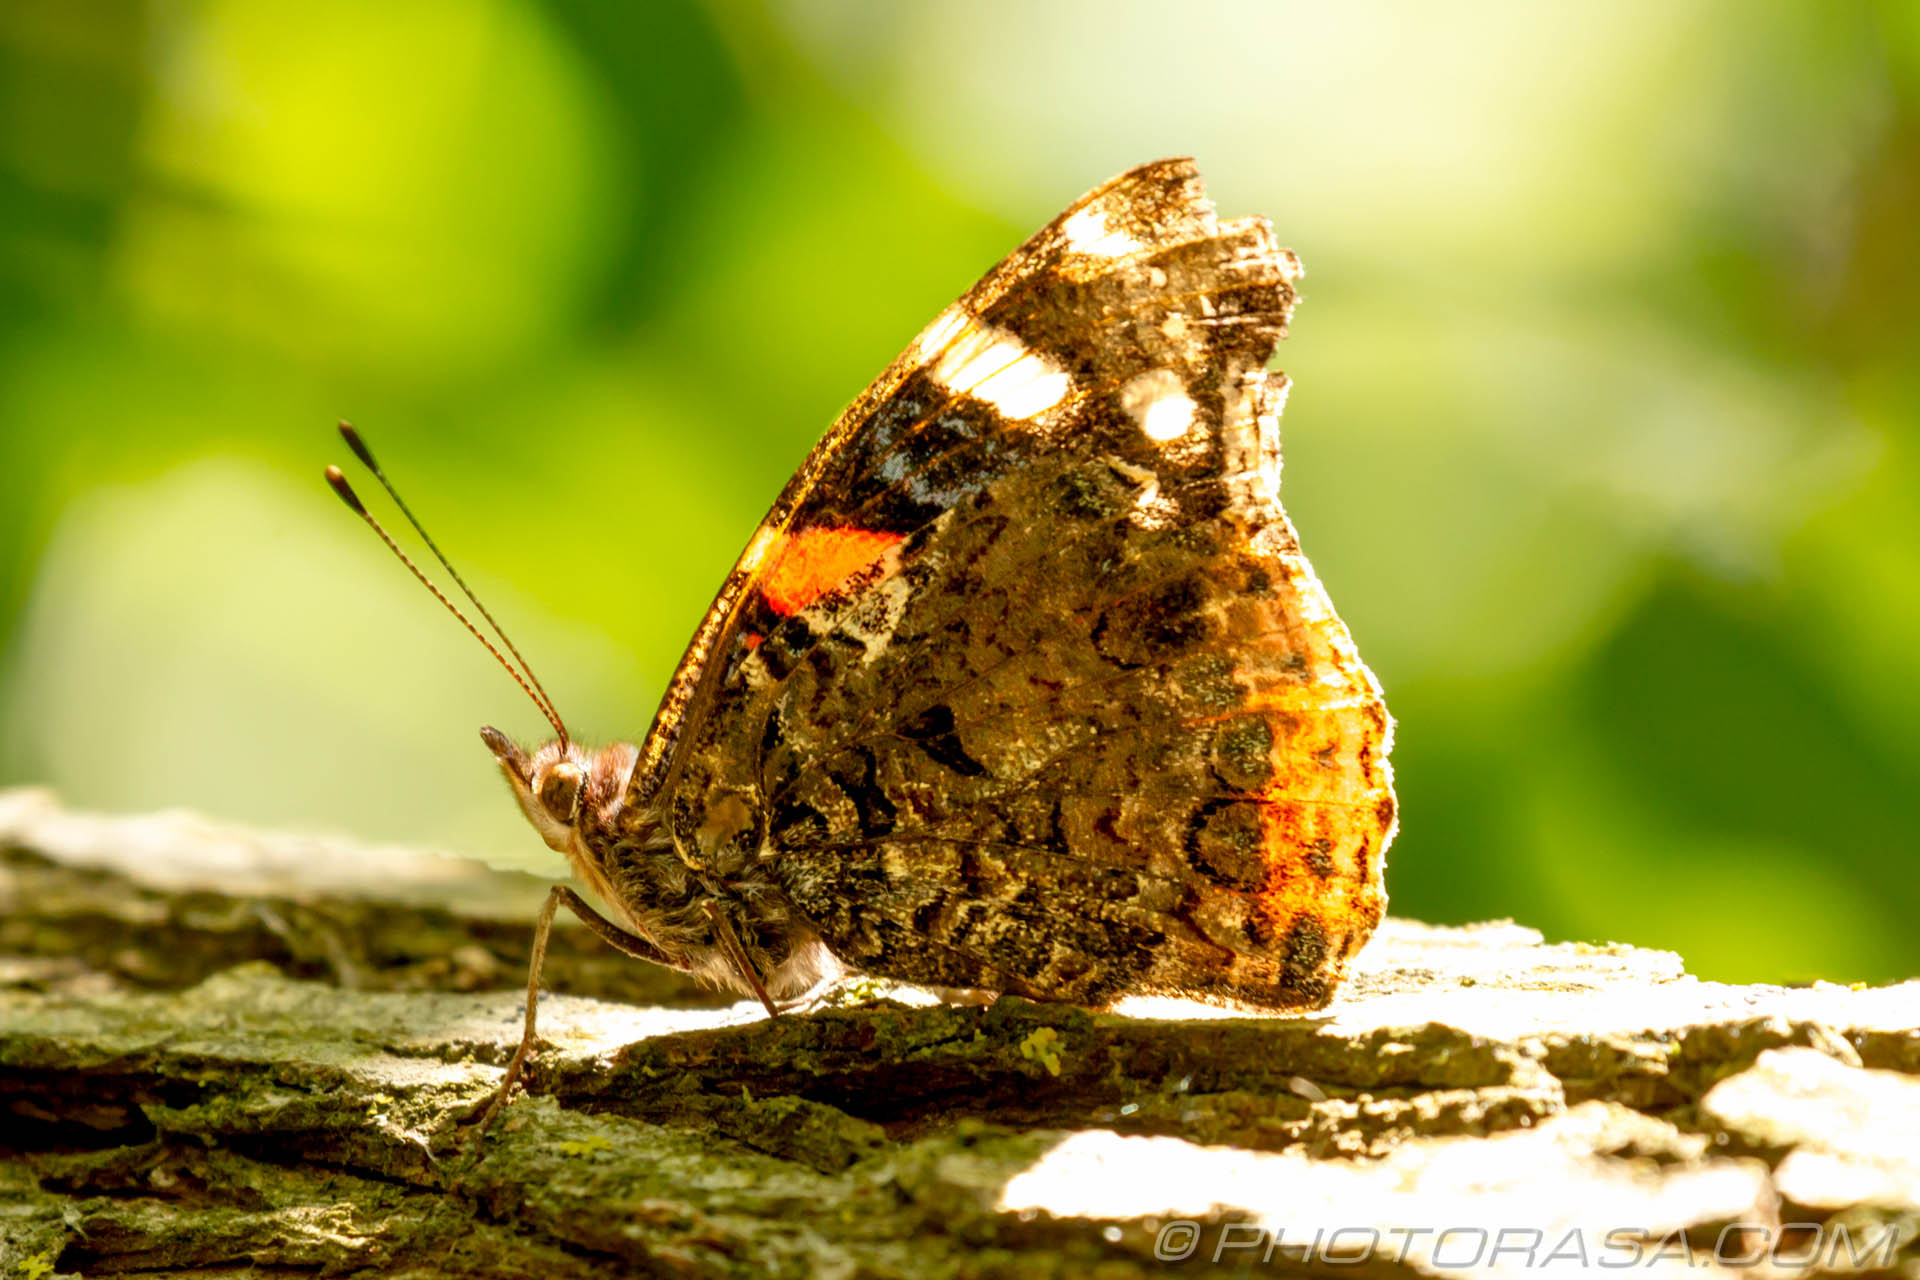 http://photorasa.com/red-admiral/red-admiral-underside-markings/